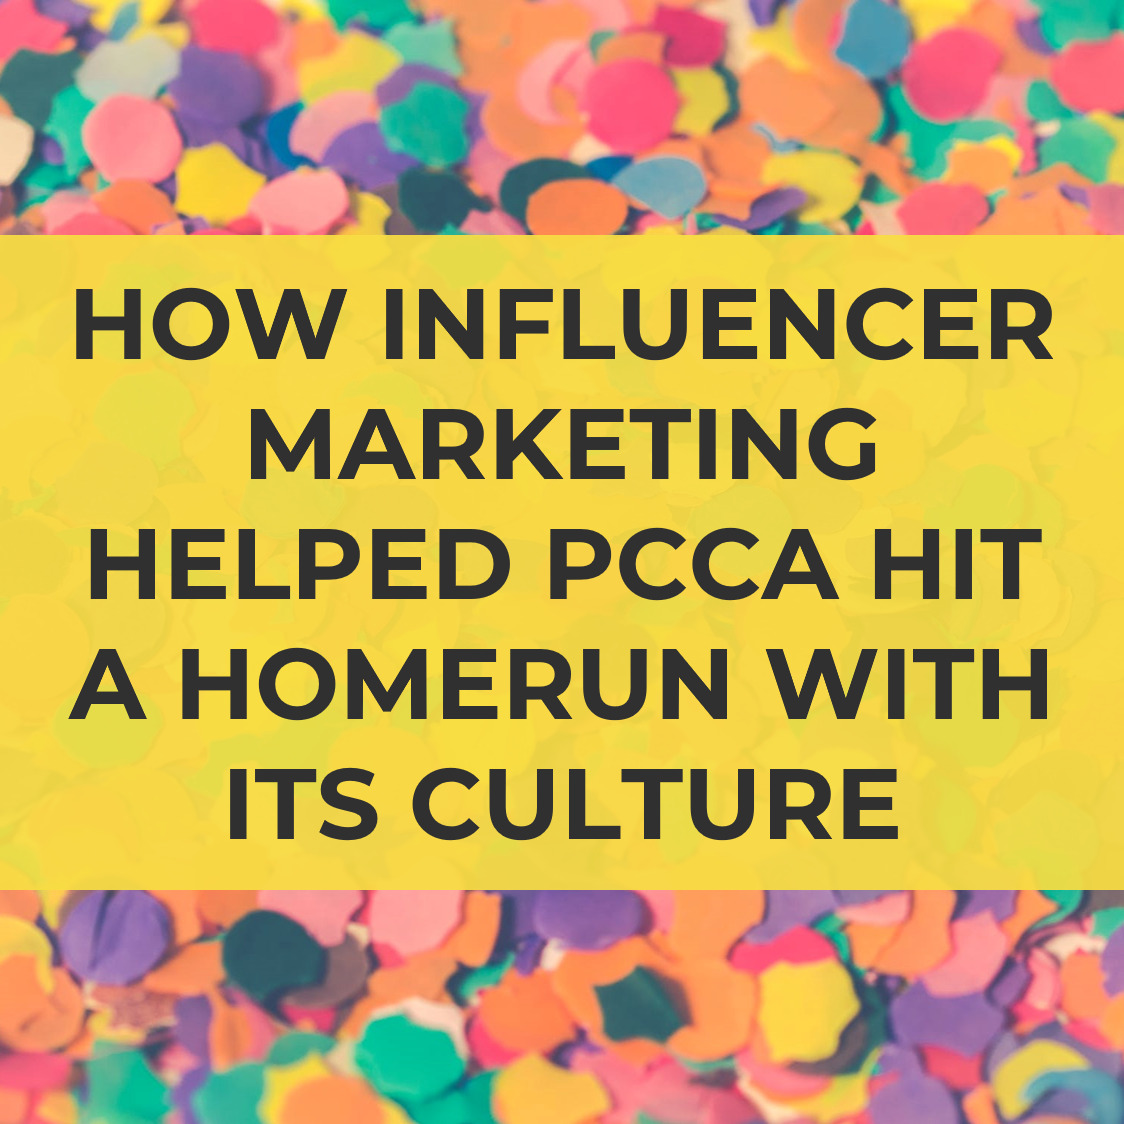 How Influencer Marketing Helped PCCA